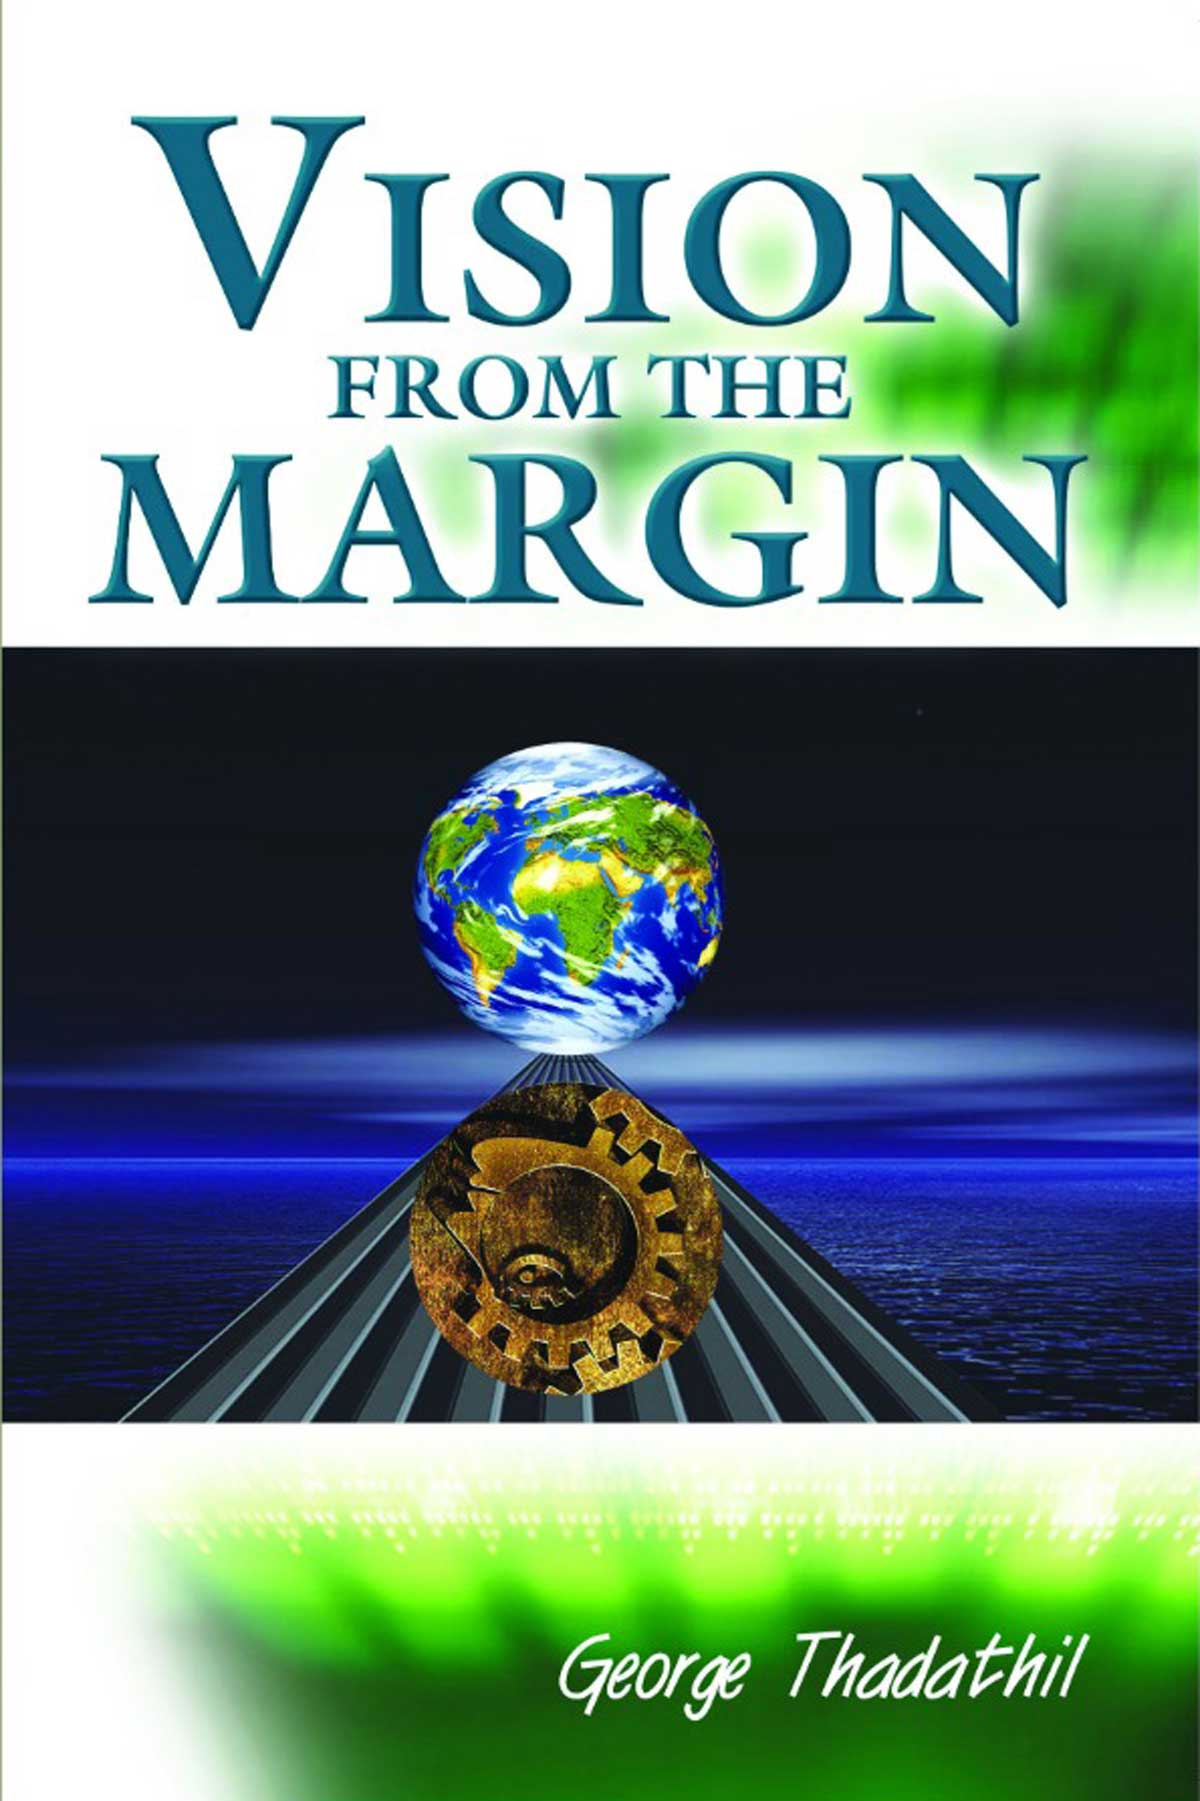 Vision from the Margin